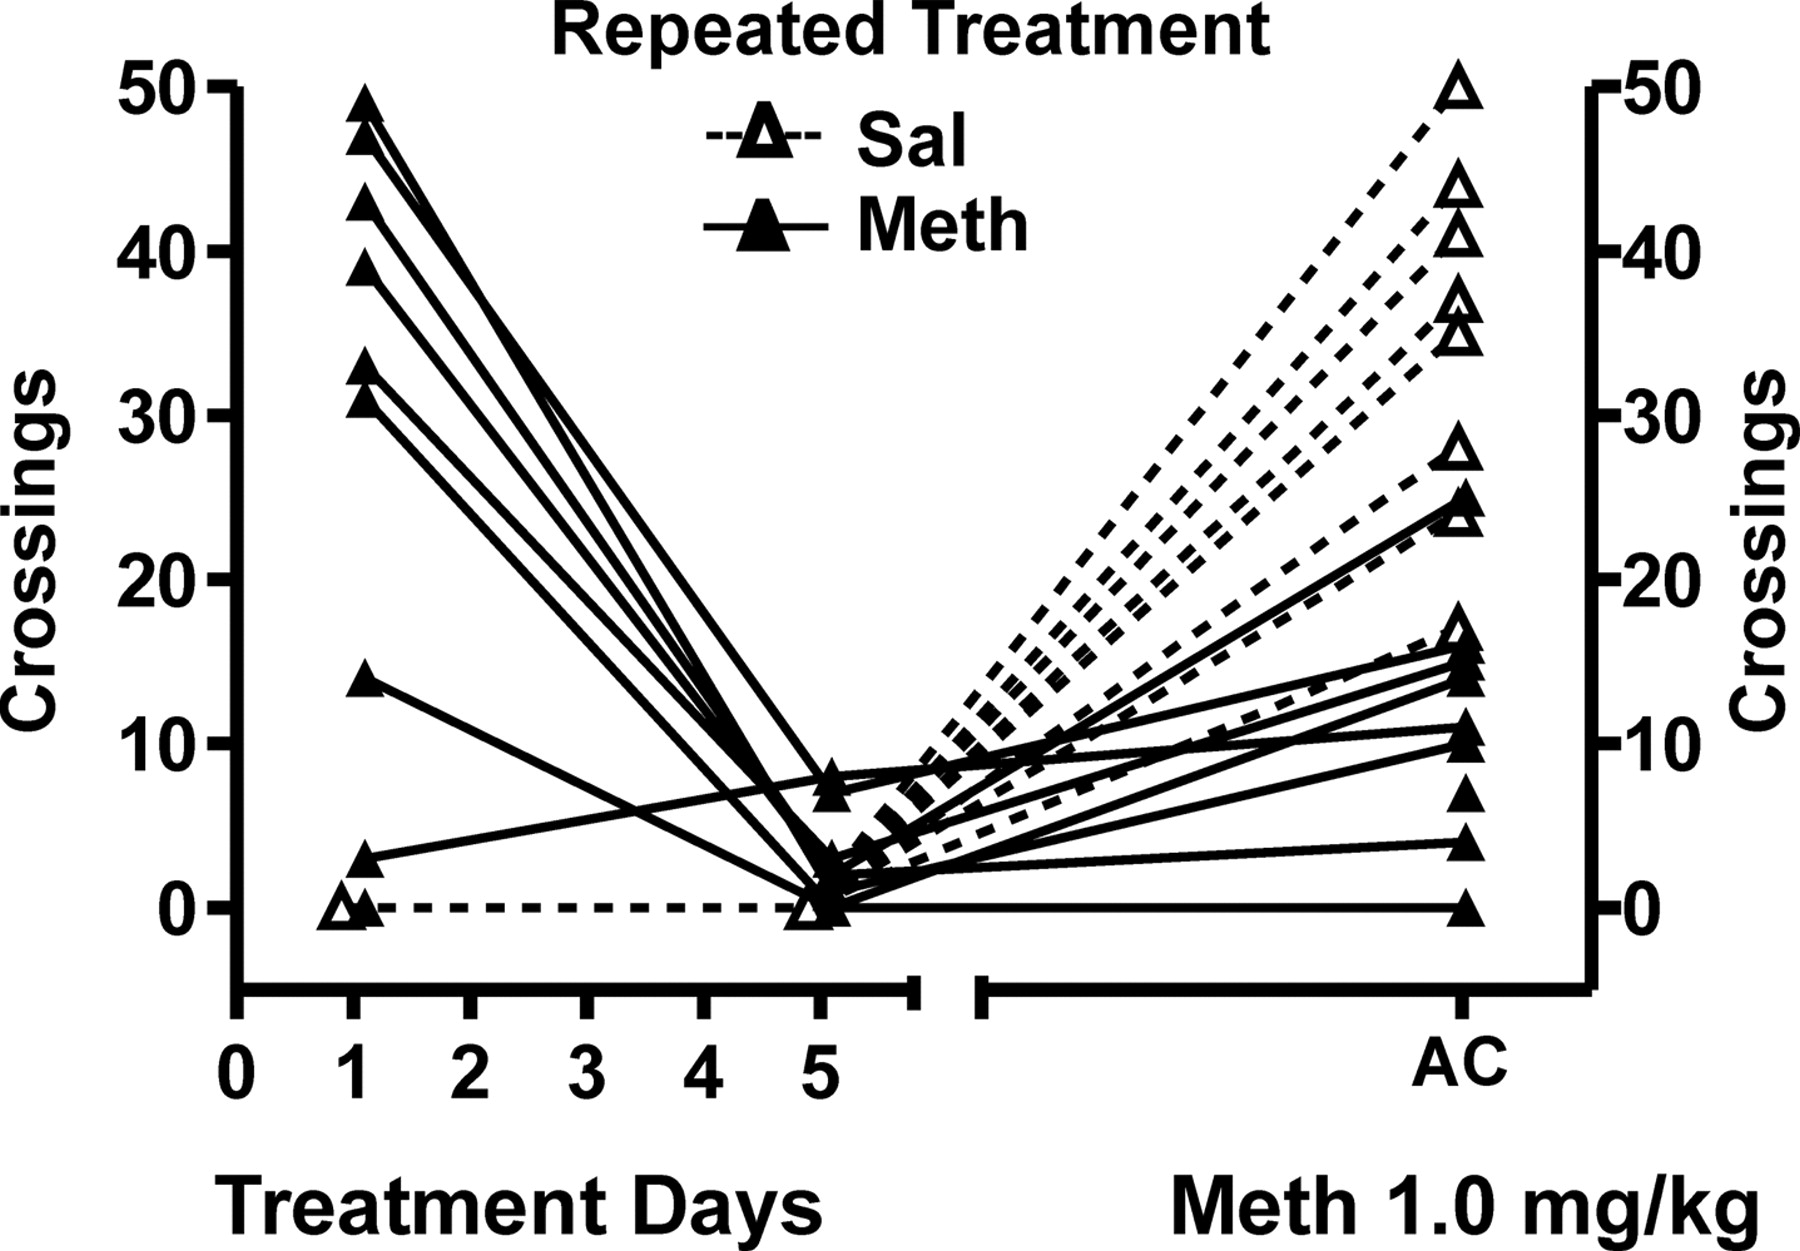 Methamphetamine-Induced Sensitization Differentially